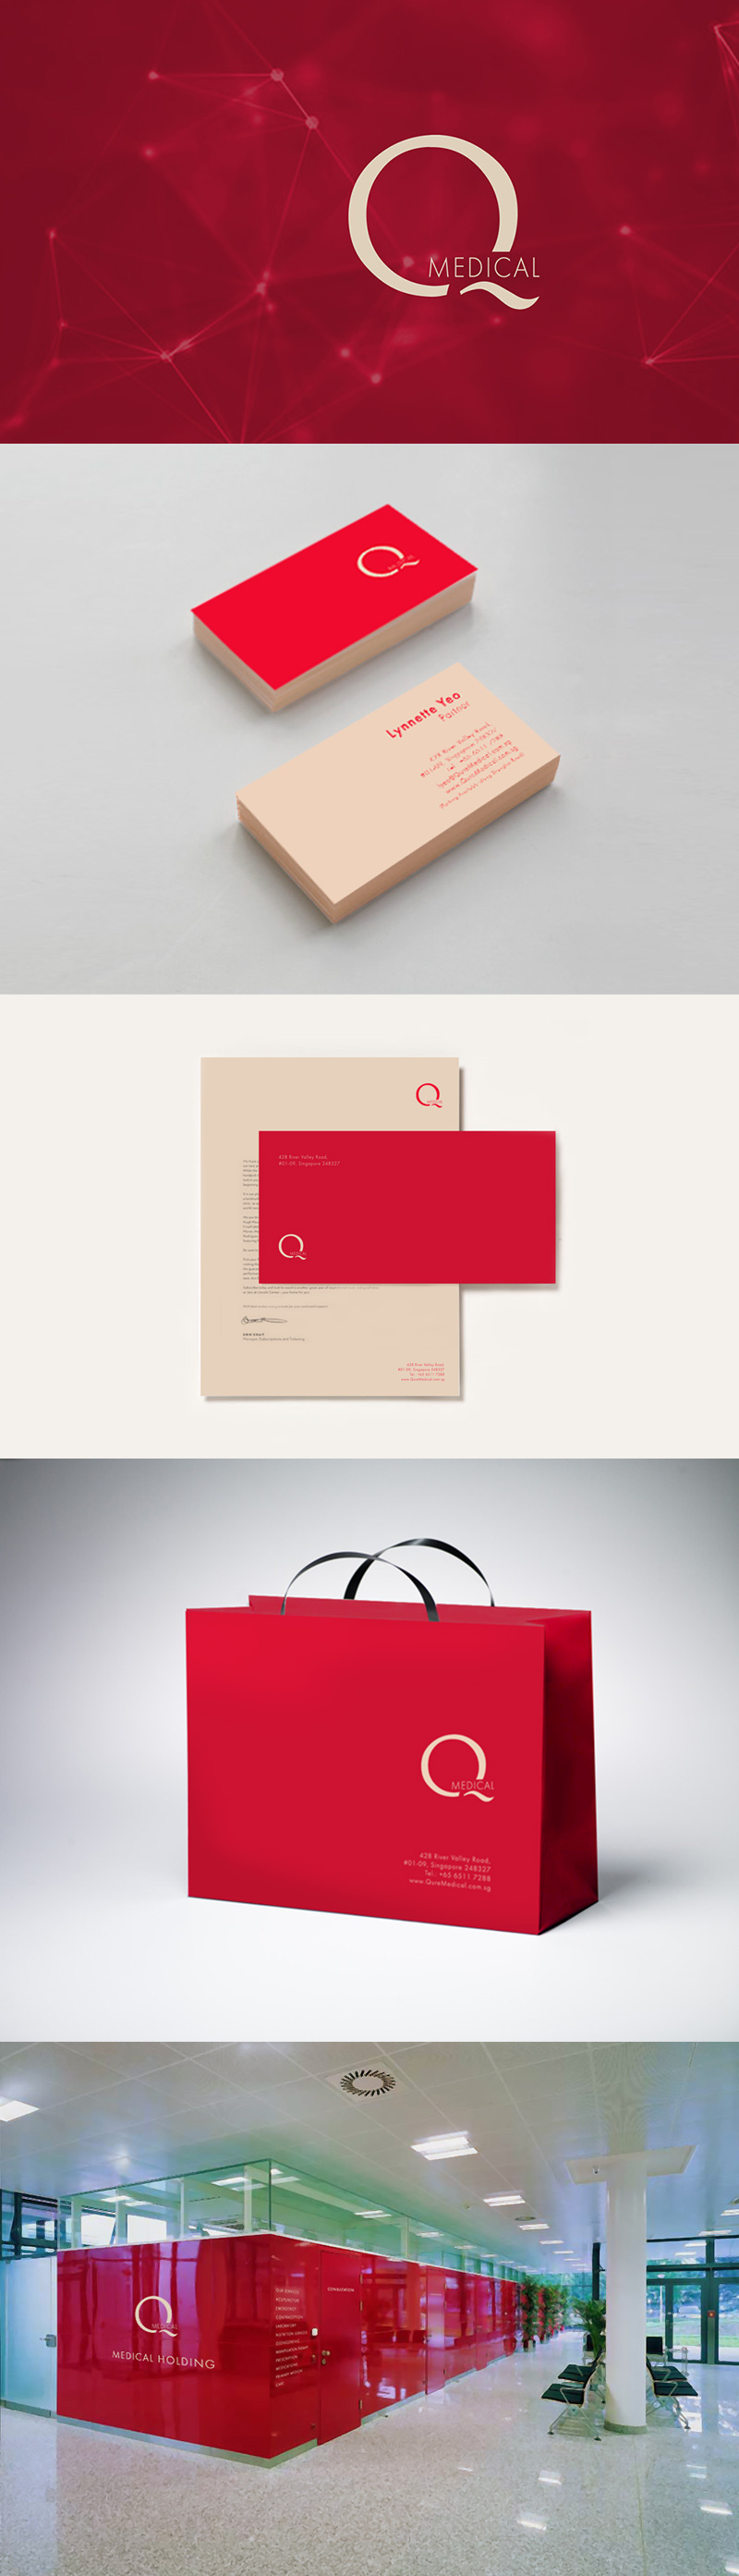 Medical clinic identity by Inna Vinchenko